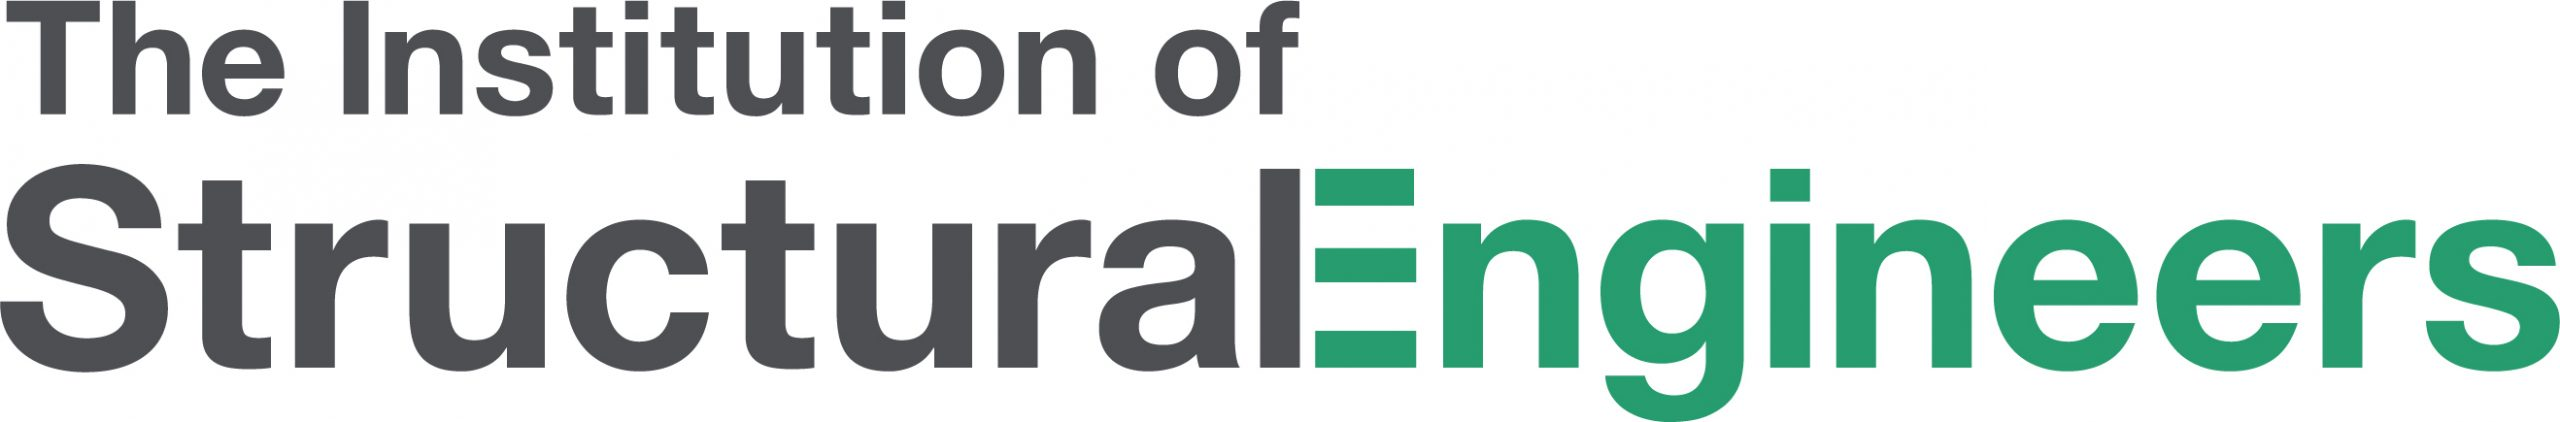 Institute of Structural Engineers Logo